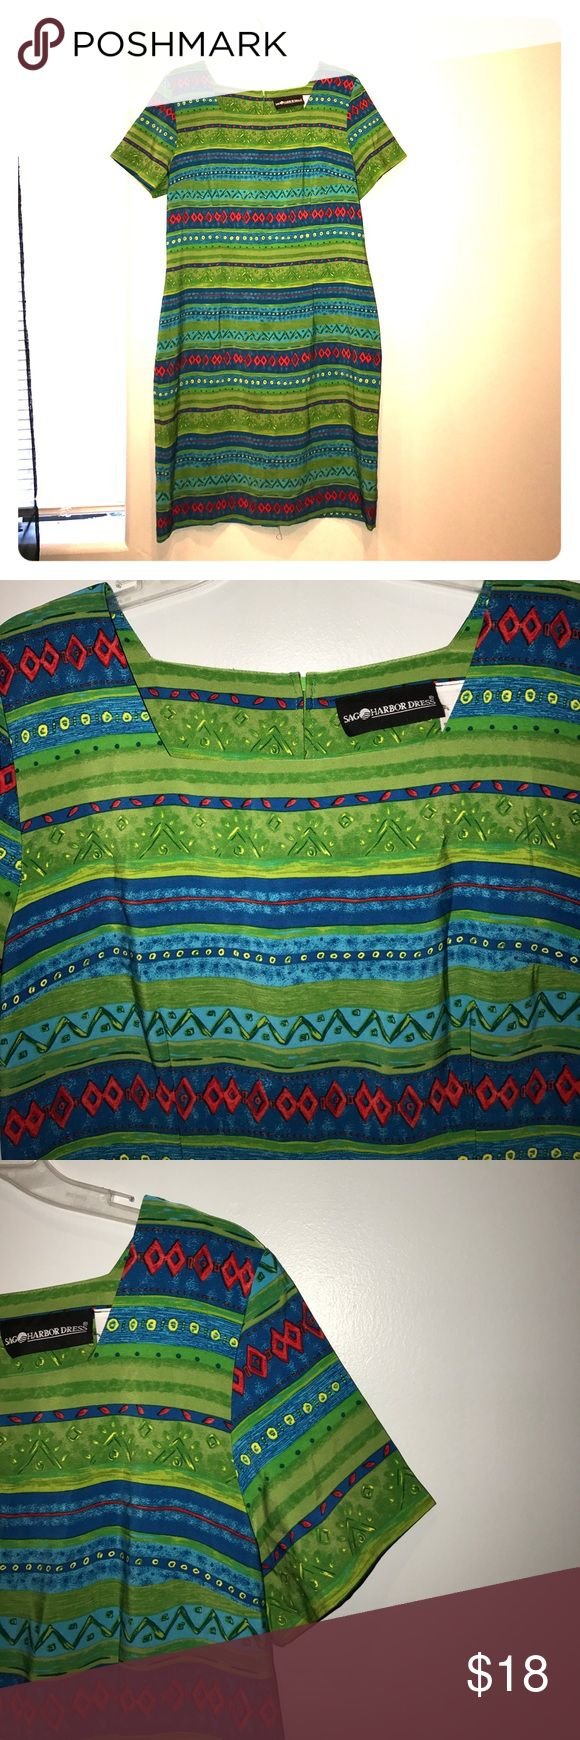 Sag Harbor Green Blue Dress Sz 14 100% Polyester.  No flaws. Love this dress color red, green, and red. Pit to pit 17 inches shoulder to bottom 38 inches. Short sleeve. Pet free smoke free home. Sag Harbor Dresses Midi